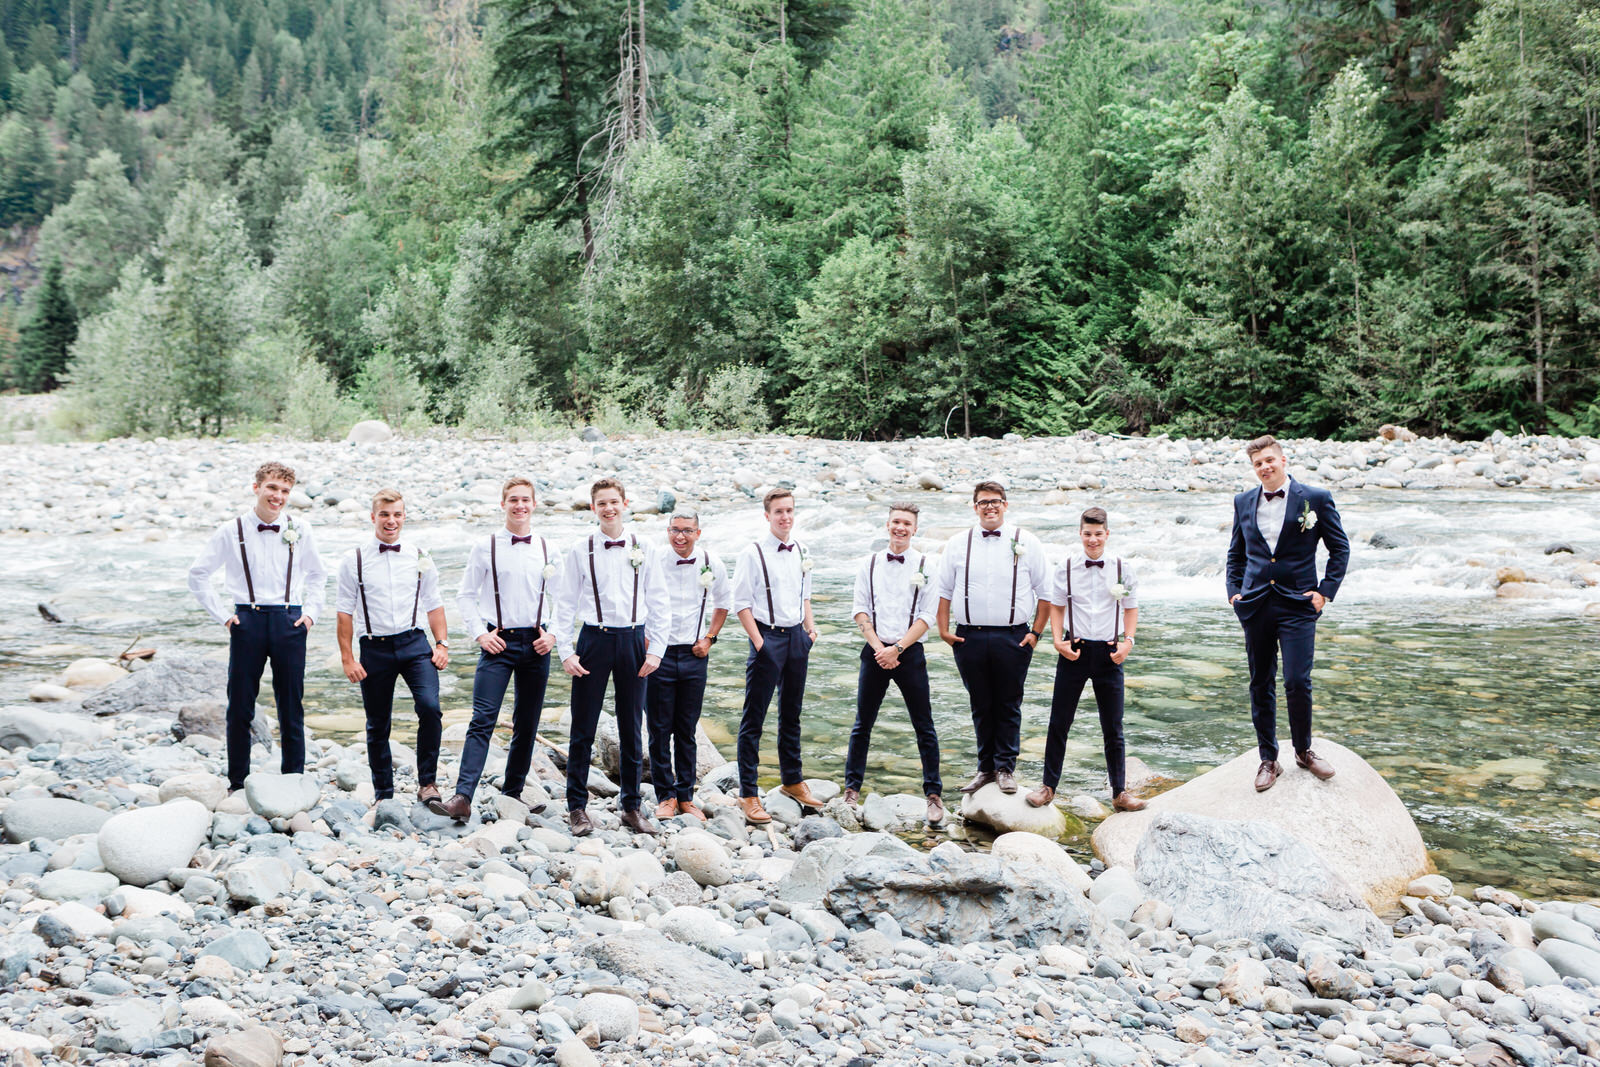 Groomsmen & groom bridal party portraits in nature